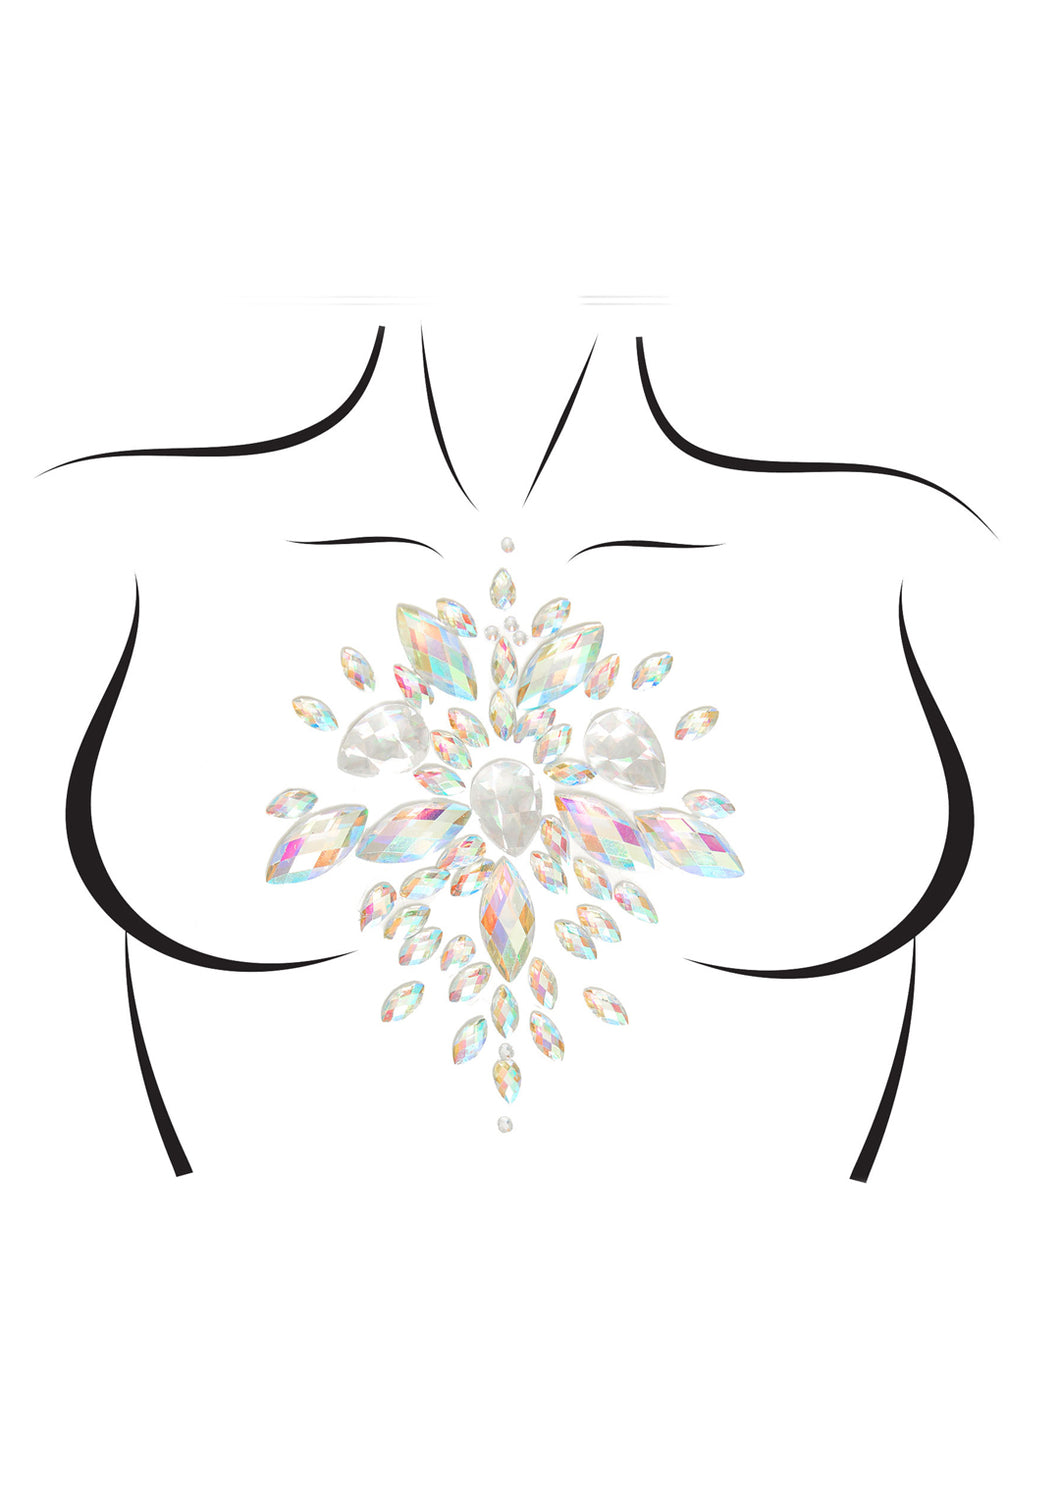 Clear Joanna Celestial Adhesive Body Jewels Sticker